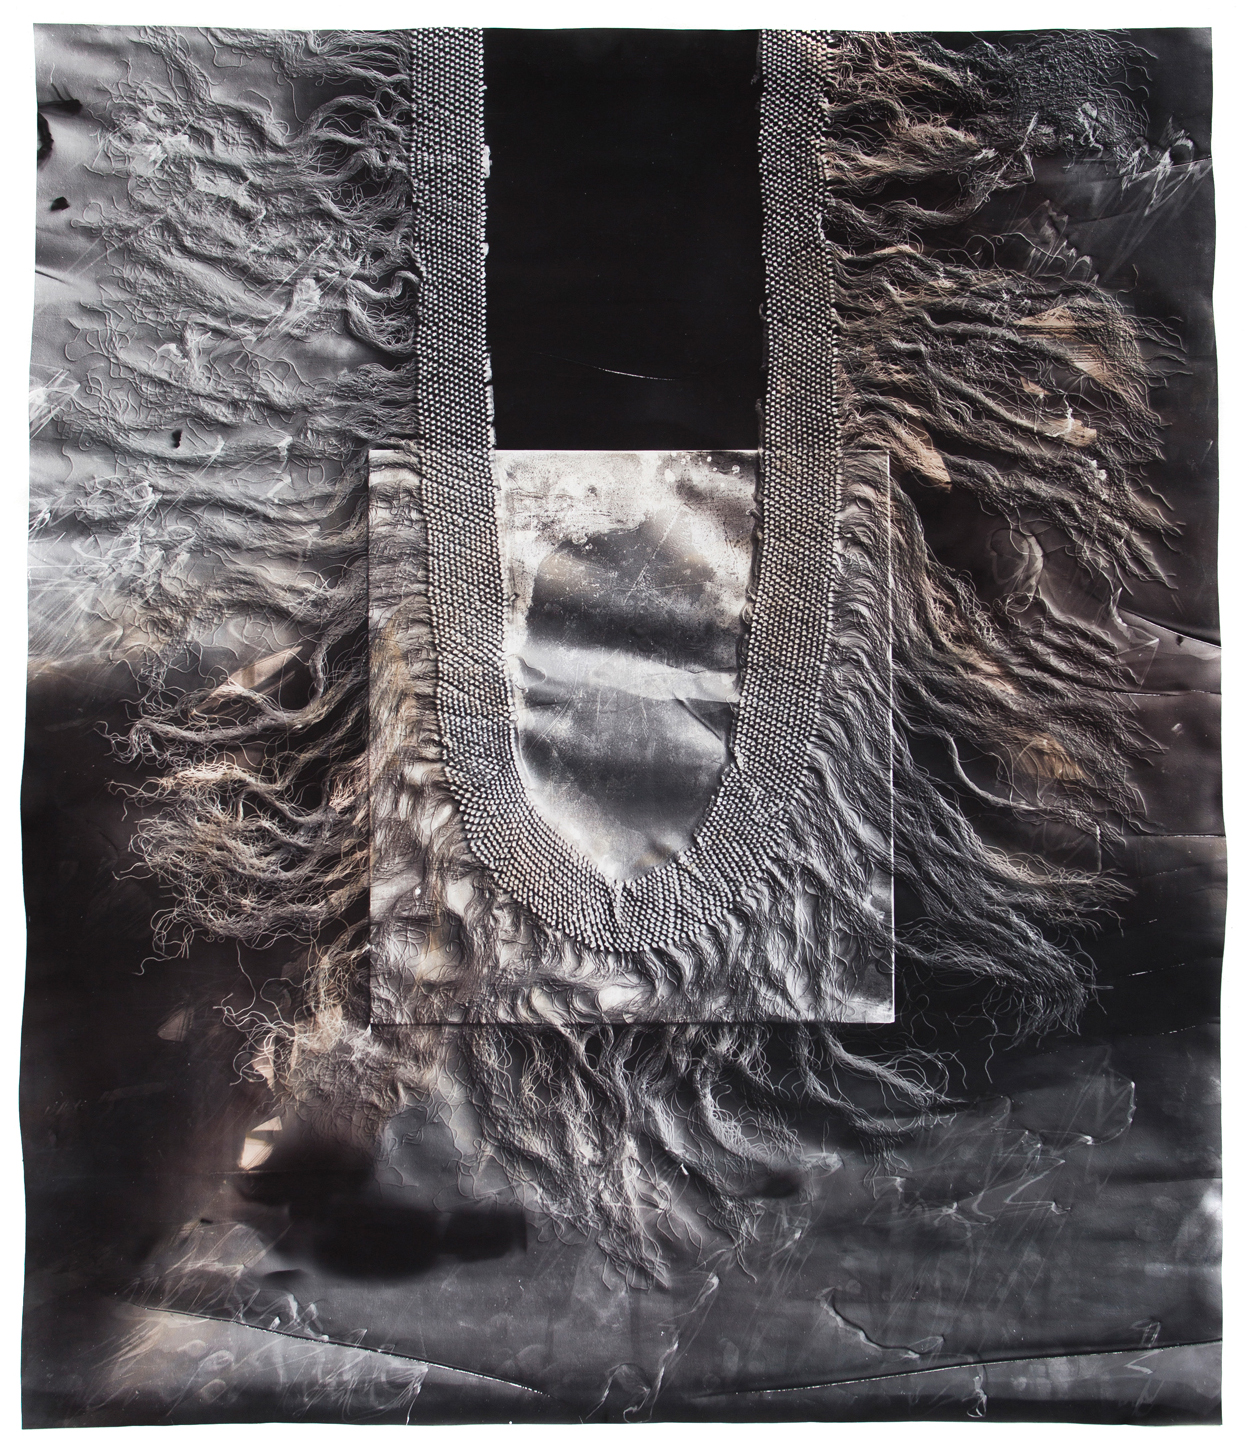 KLEA MCKENNA  Snakes in the Garden (3),  2018 Photographic Relief. Unique Photogram on gelatin silver fiber paper. Sepia and selenium toned. Impression of the silk fringe of a Manton de Manila or Piano Shawl. Spain (via China, Philippines and Mexico). 1870's 42.5 x 36 inches